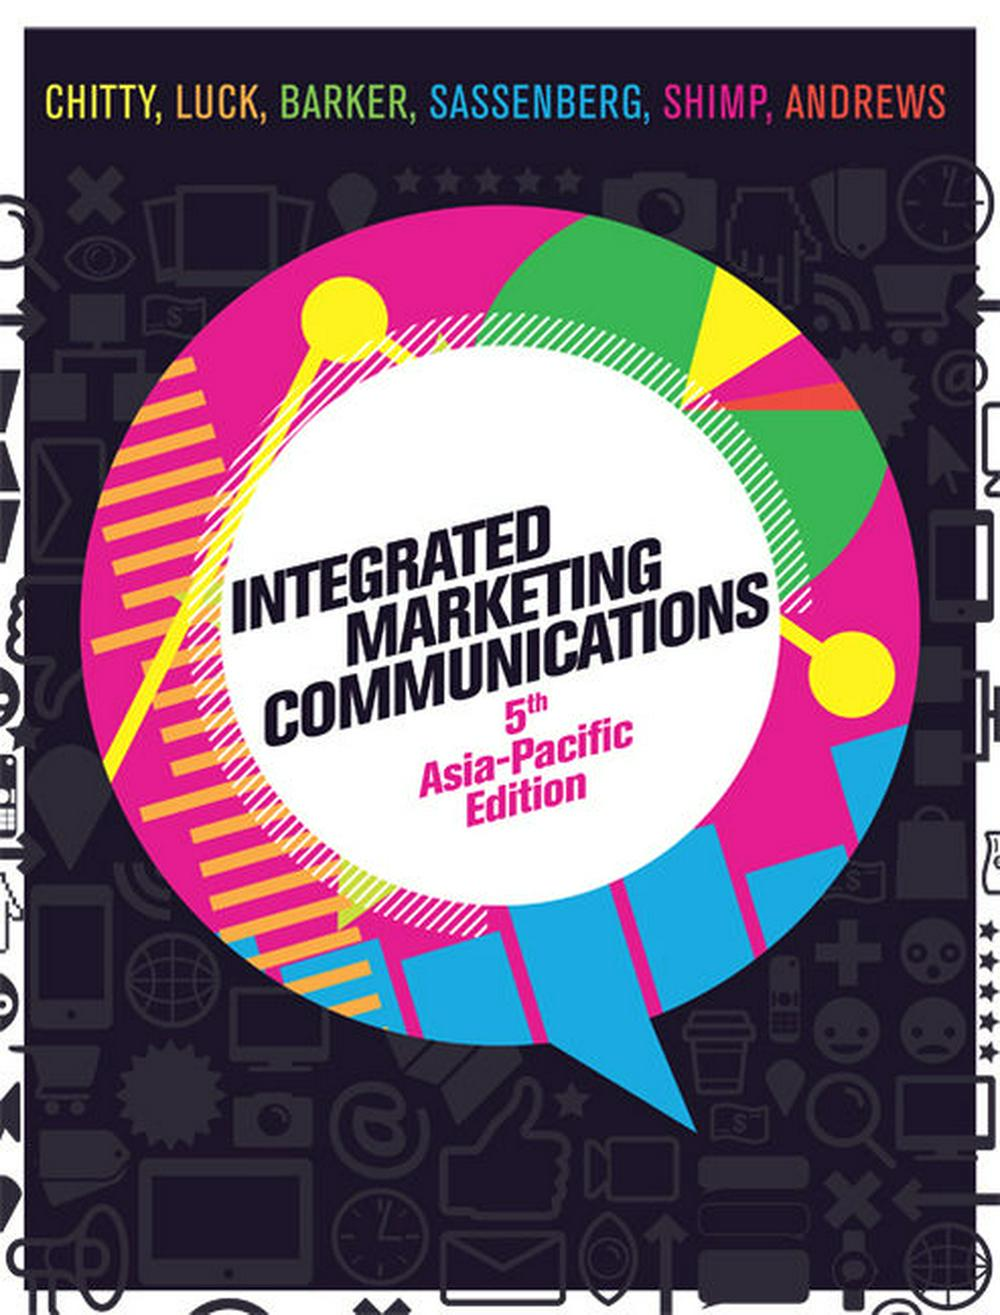 Integrated Marketing Communications with Student Resource Access 12 Months by William Chitty,Edwina Luck,Nigel Barker,Anne-Marie Sassenberg,Terence A. Shimp, ISBN: 9780170386517